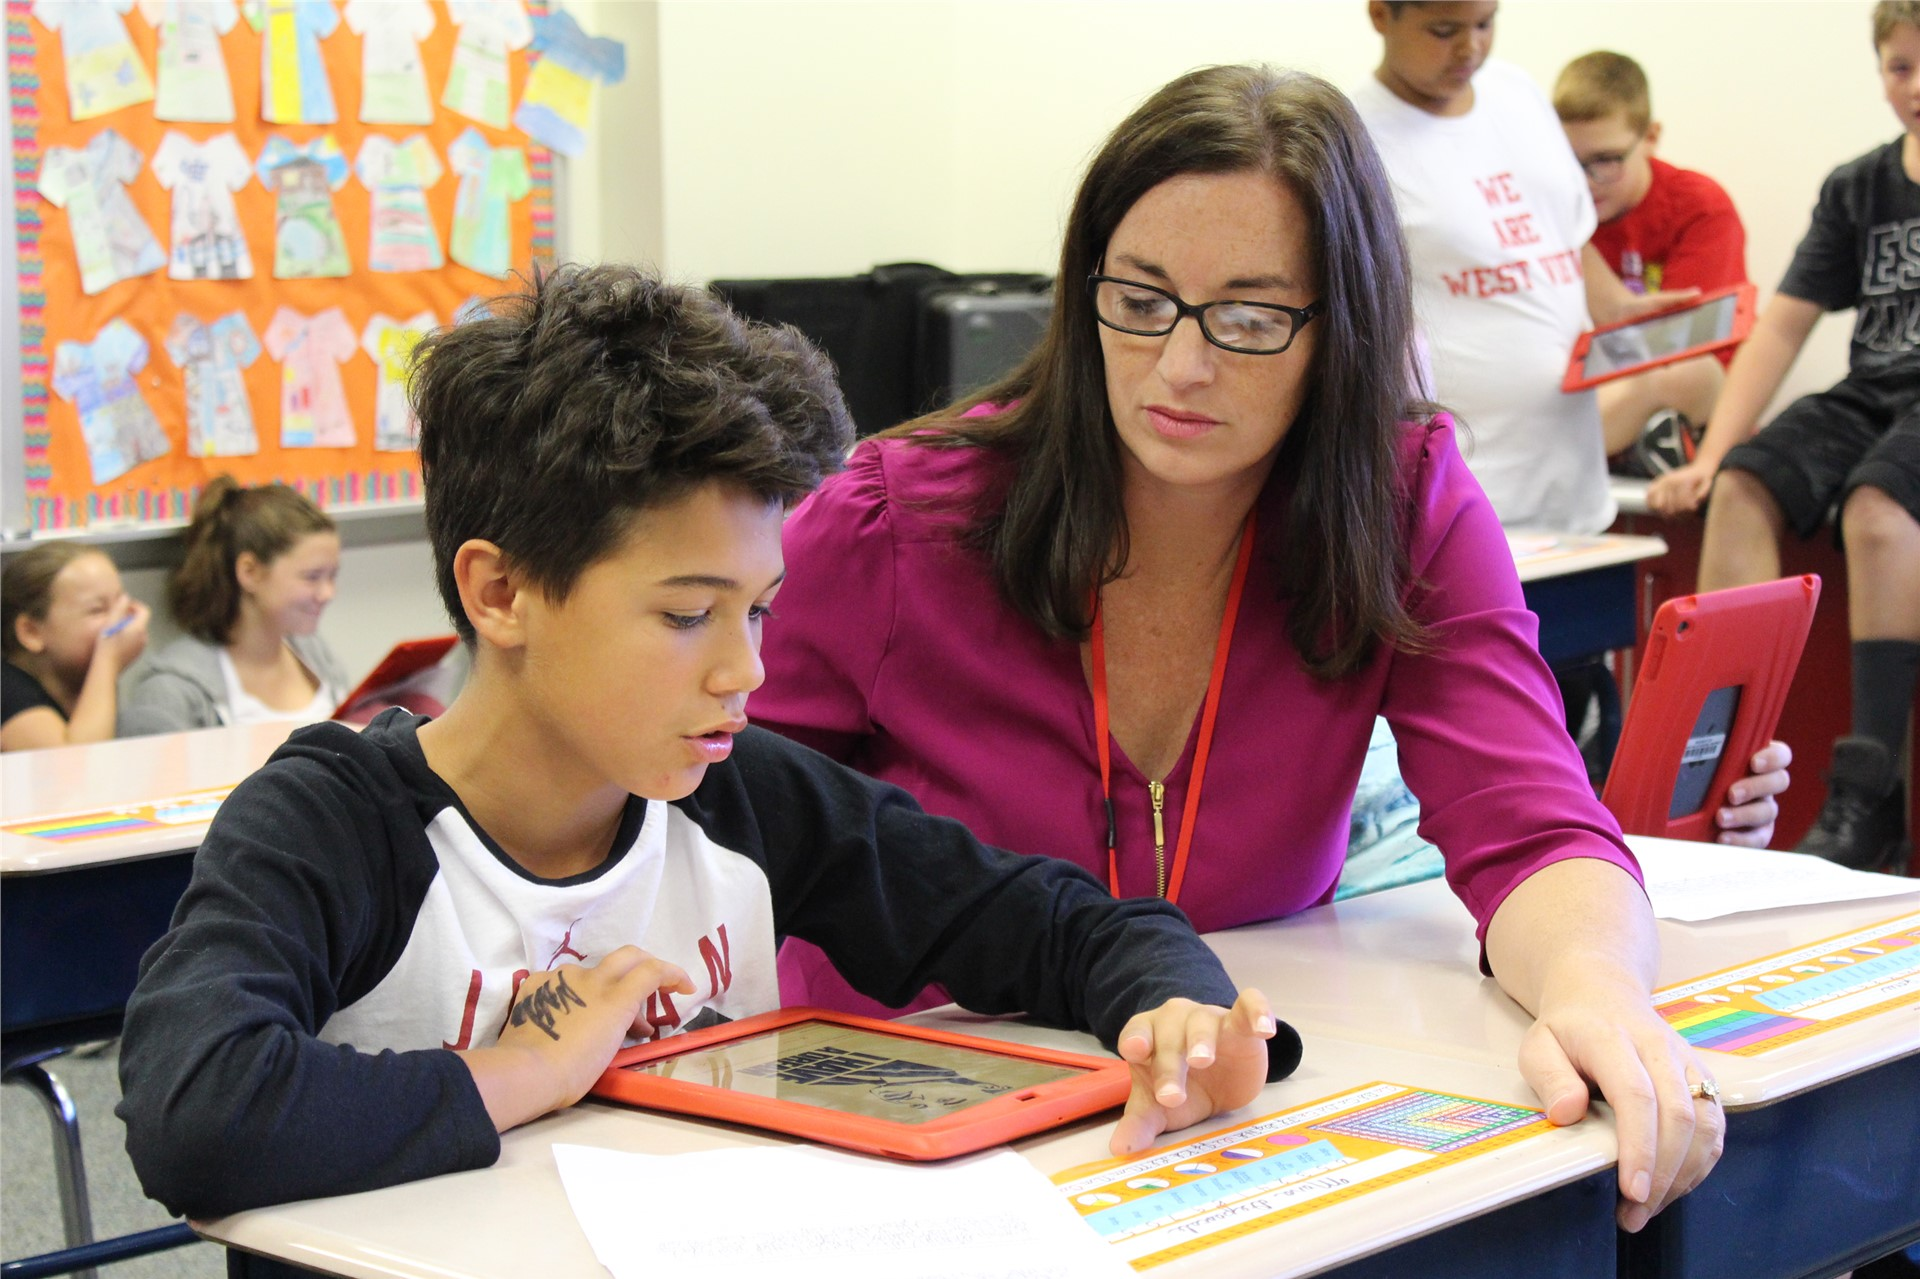 Student and Teacher Using iPad